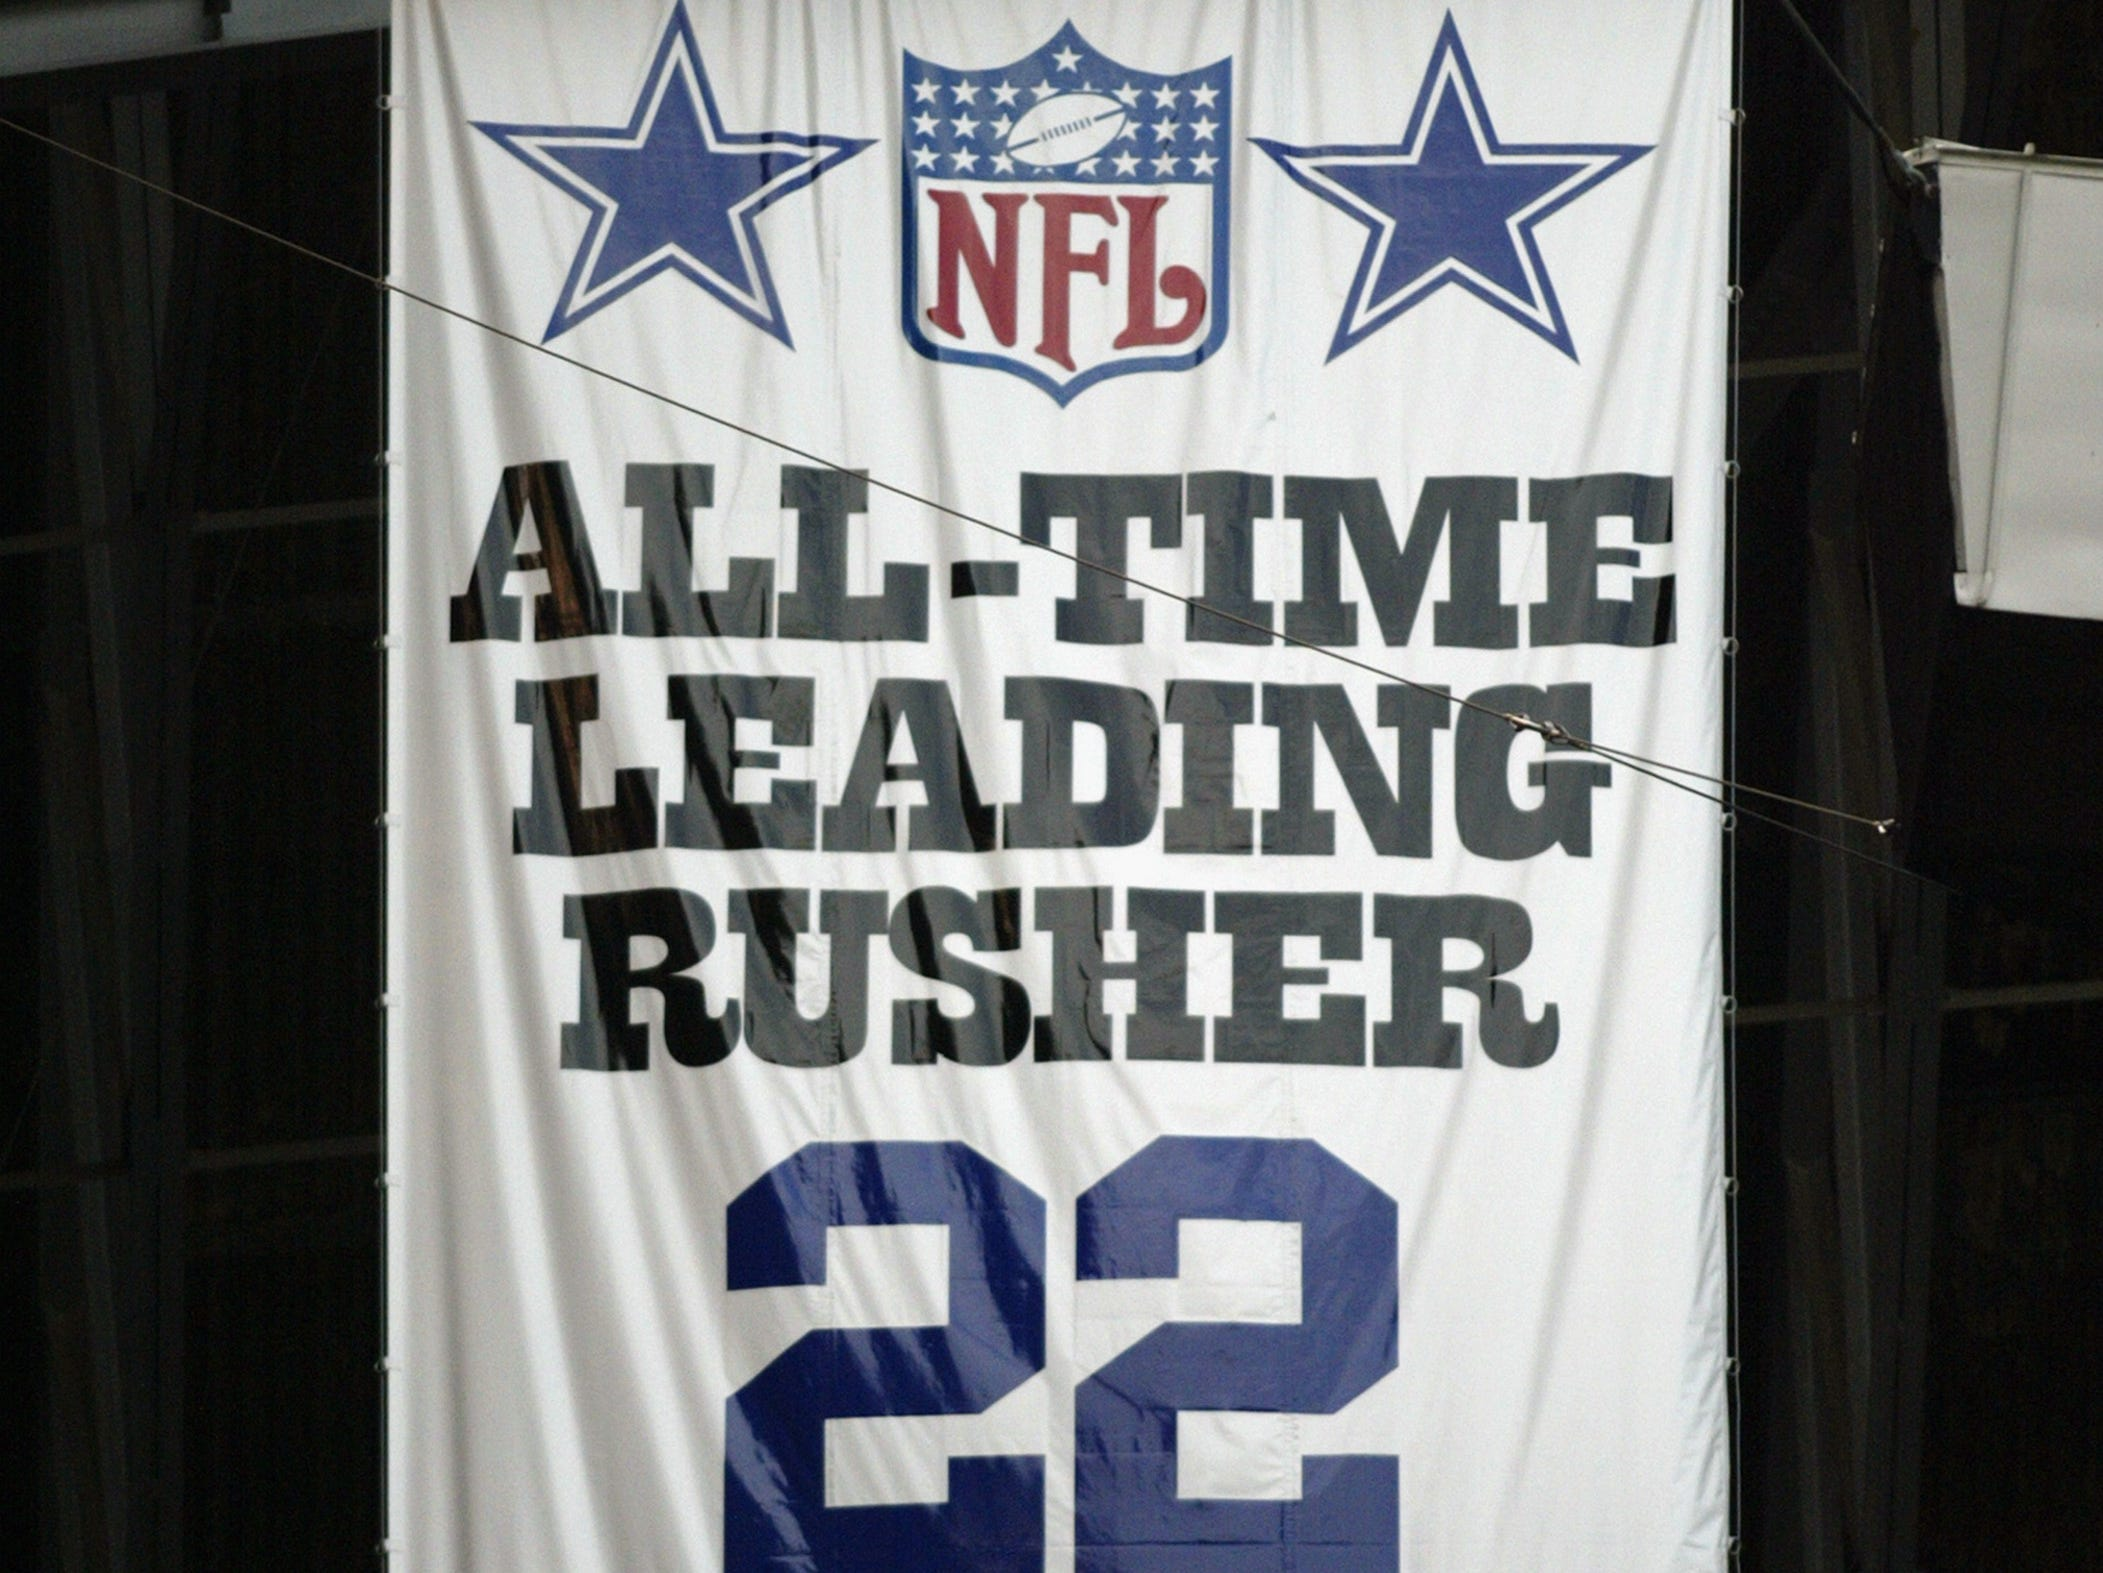 IRVING, TX - NOVEMBER 24:  A banner hangs from Texas Stadium rafters in tribute to Emmitt Smith #22 of the Dallas Cowboys as the all-time leading rusher, during the NFL game against the Jacksonville Jaguars at Texas Stadium on November 24, 2002 in Irving, Texas.  The Jaguars defeated the Cowboys 21-19.  (Photo by Ronald Martinez/Getty Images)